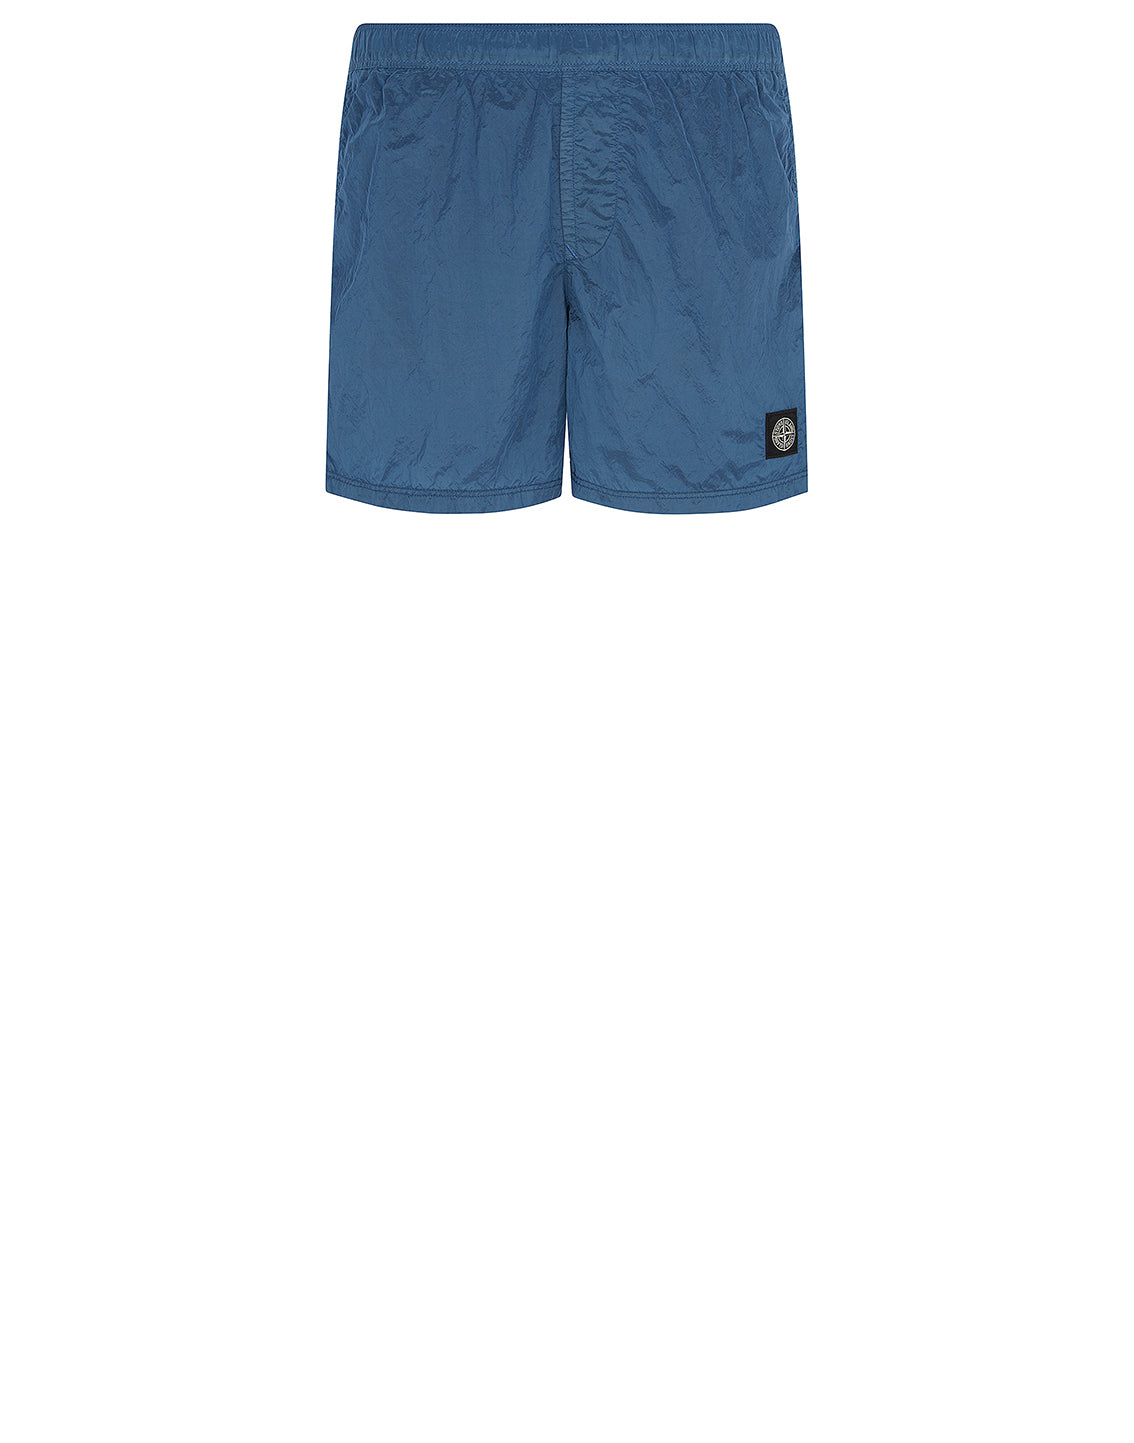 B0943 NYLON METAL Swim Shorts in Dark Blue